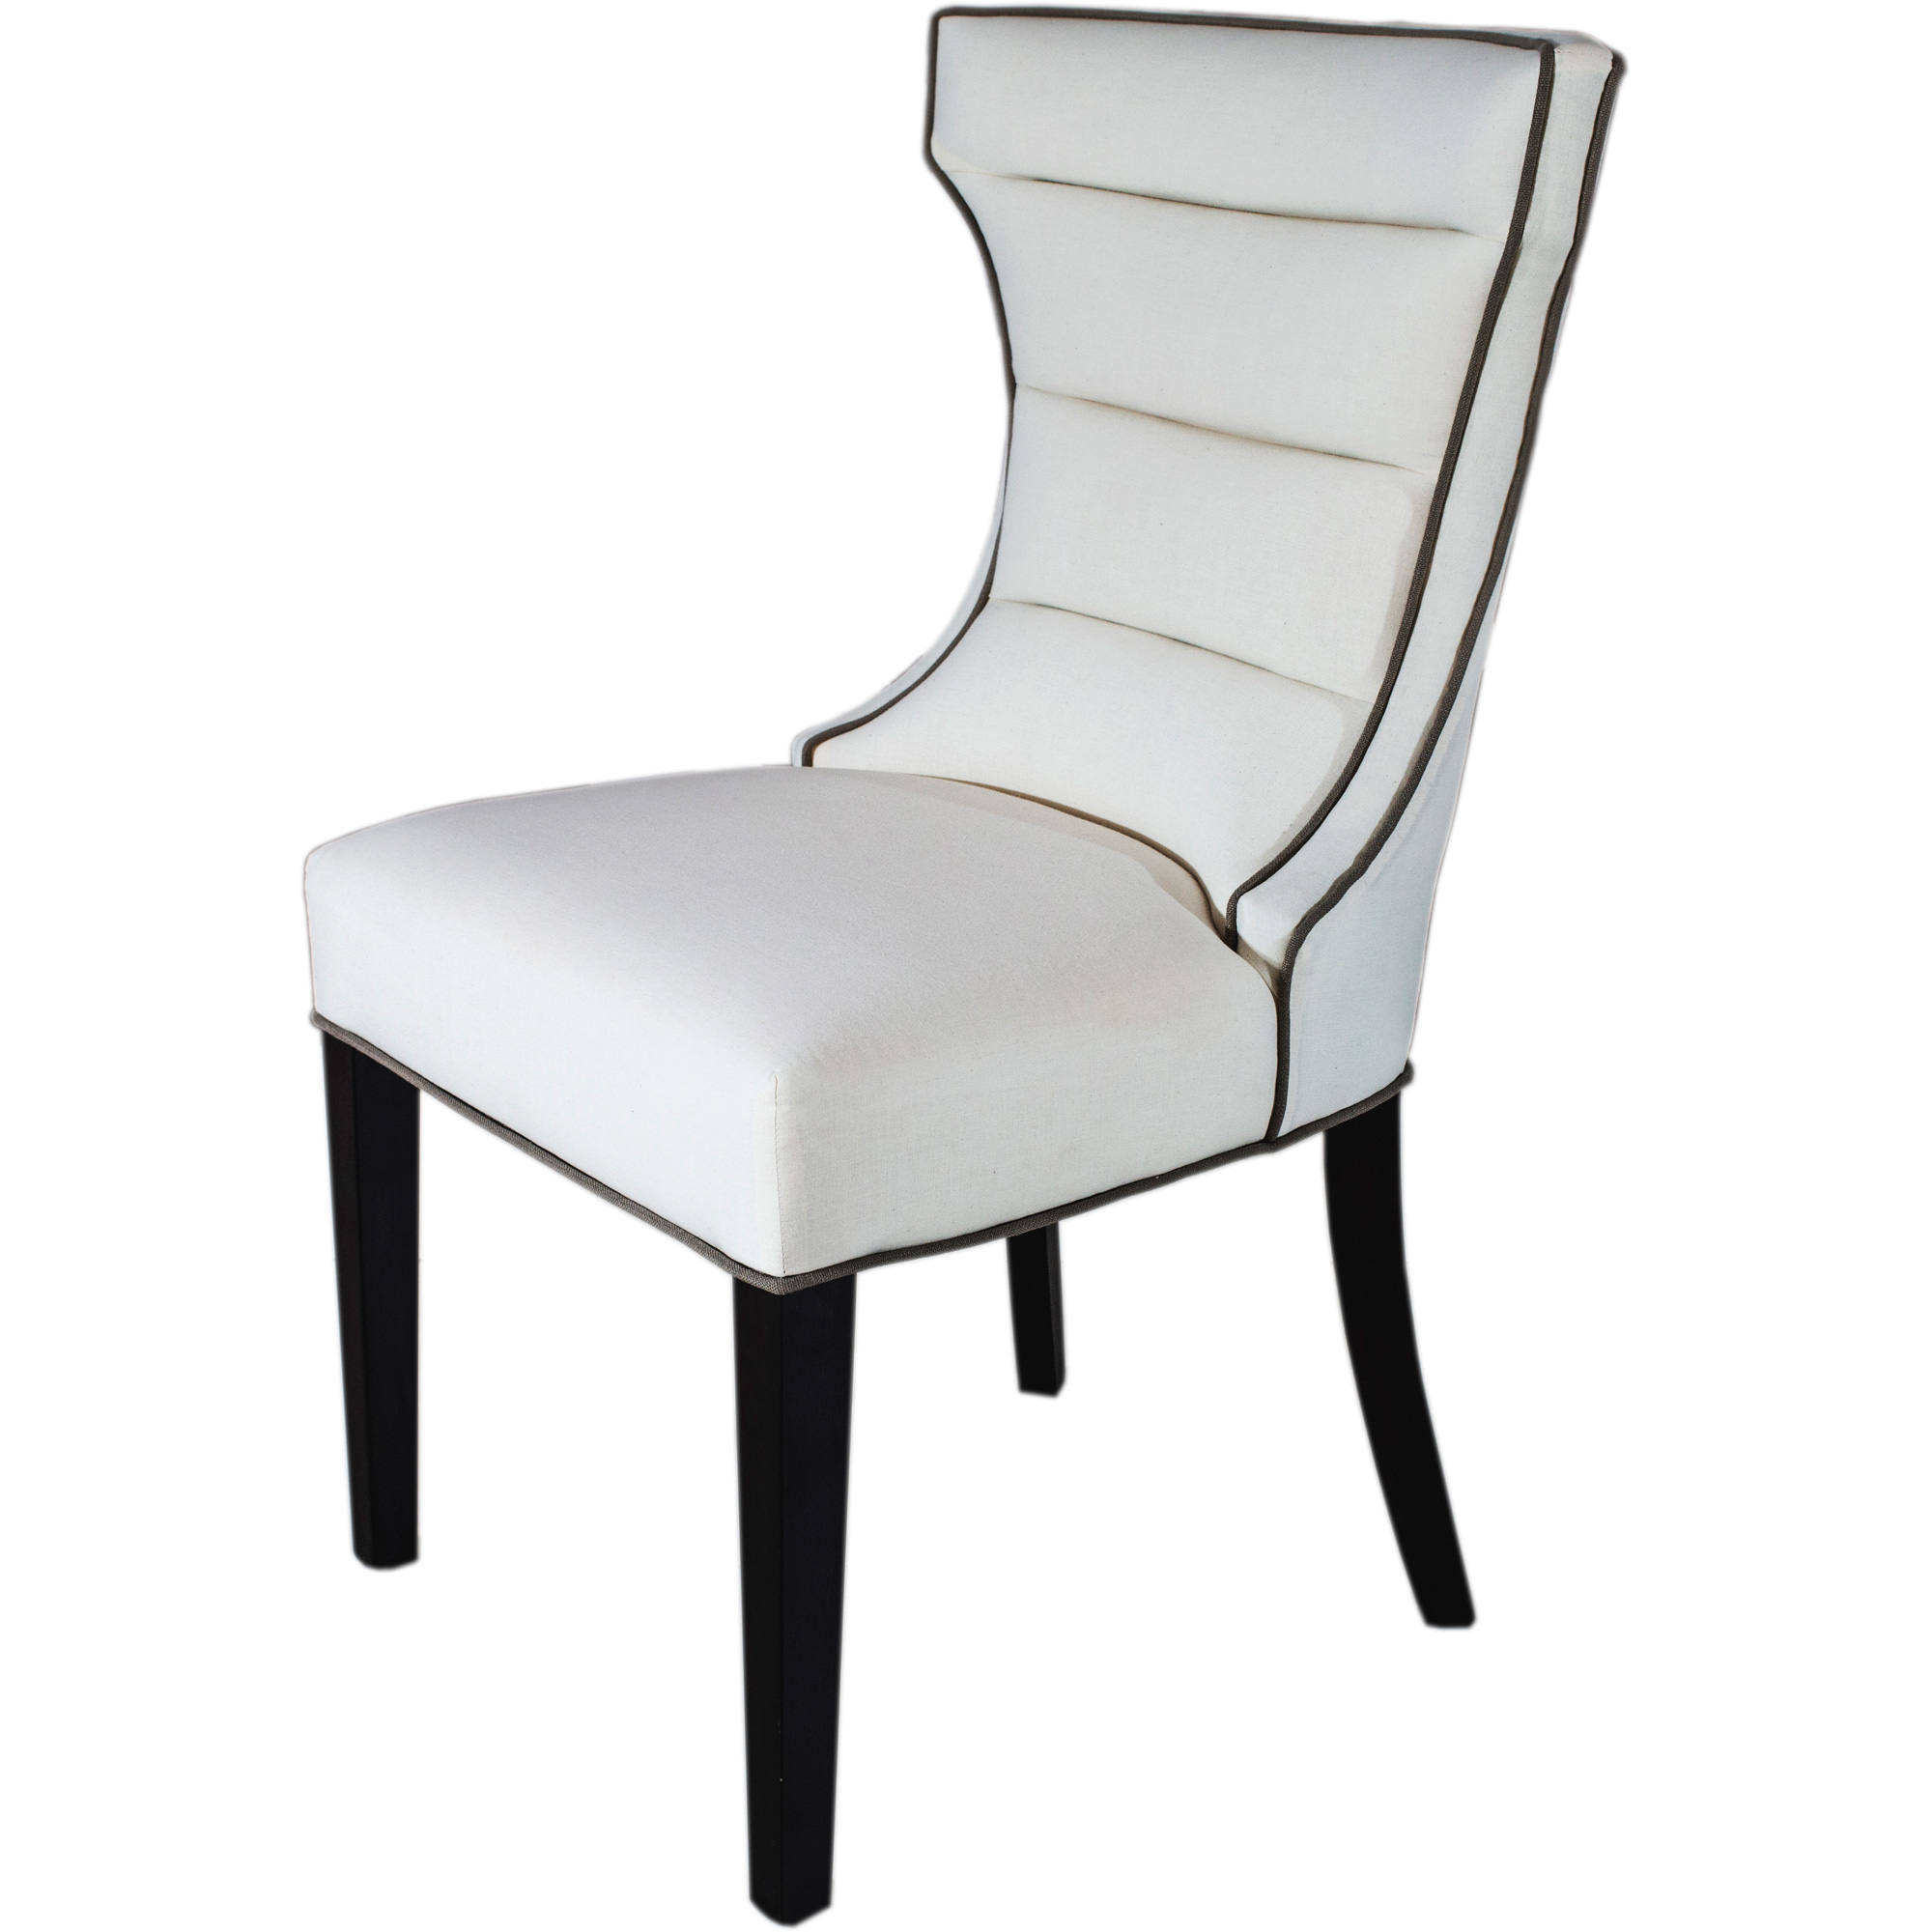 Bolton Dining Chair white background side